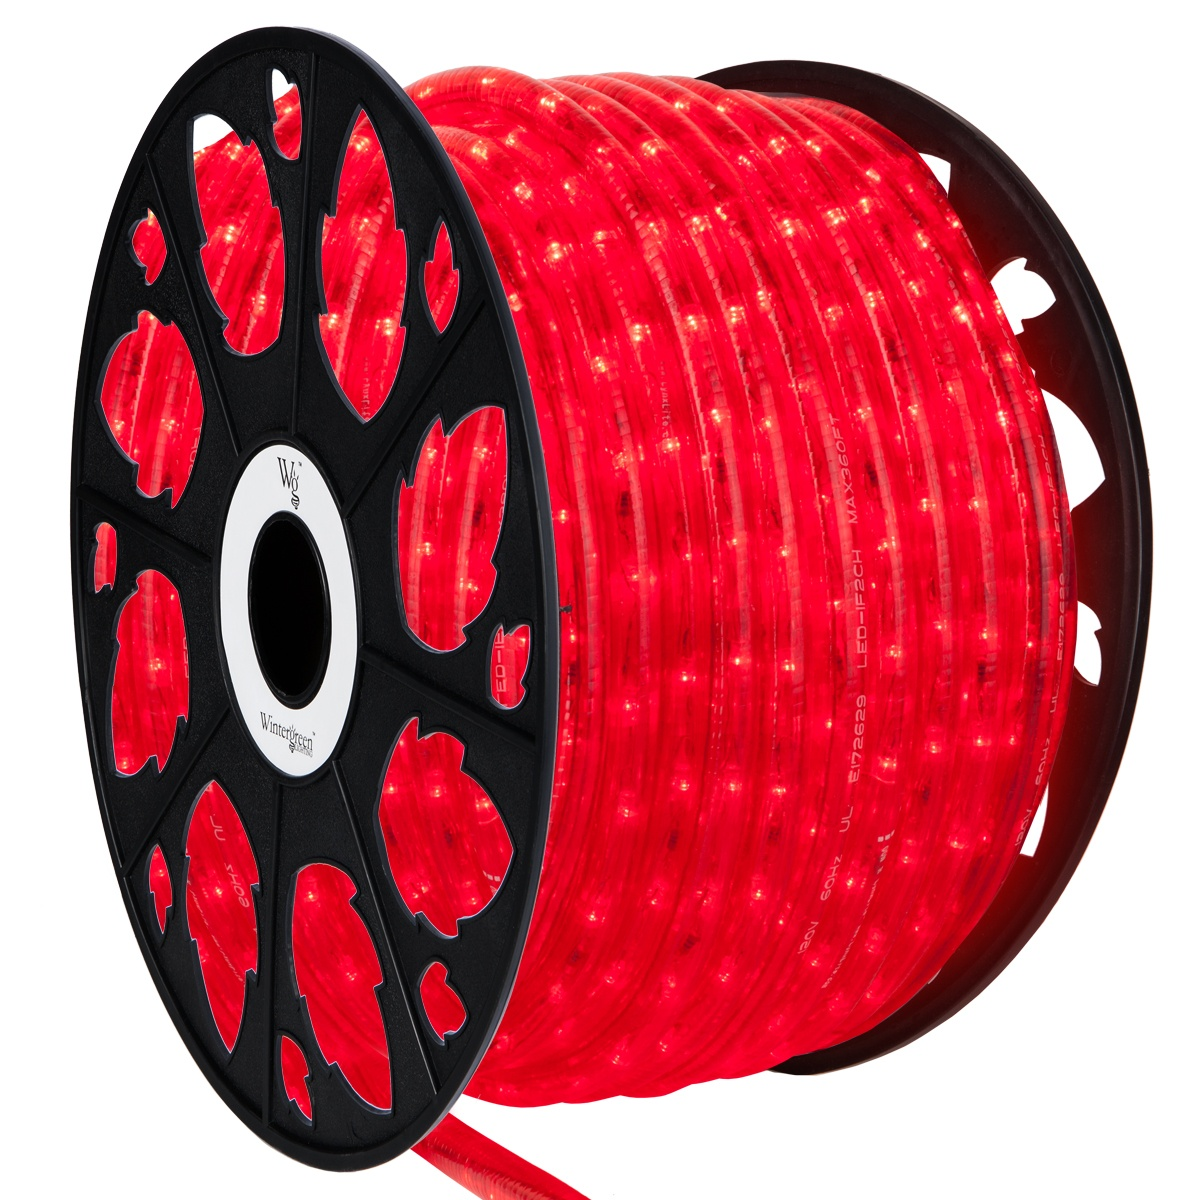 120 Volt Led String Lights : LED Rope Lights - 150 Red LED Rope Light Commercial Spool, 120 Volt